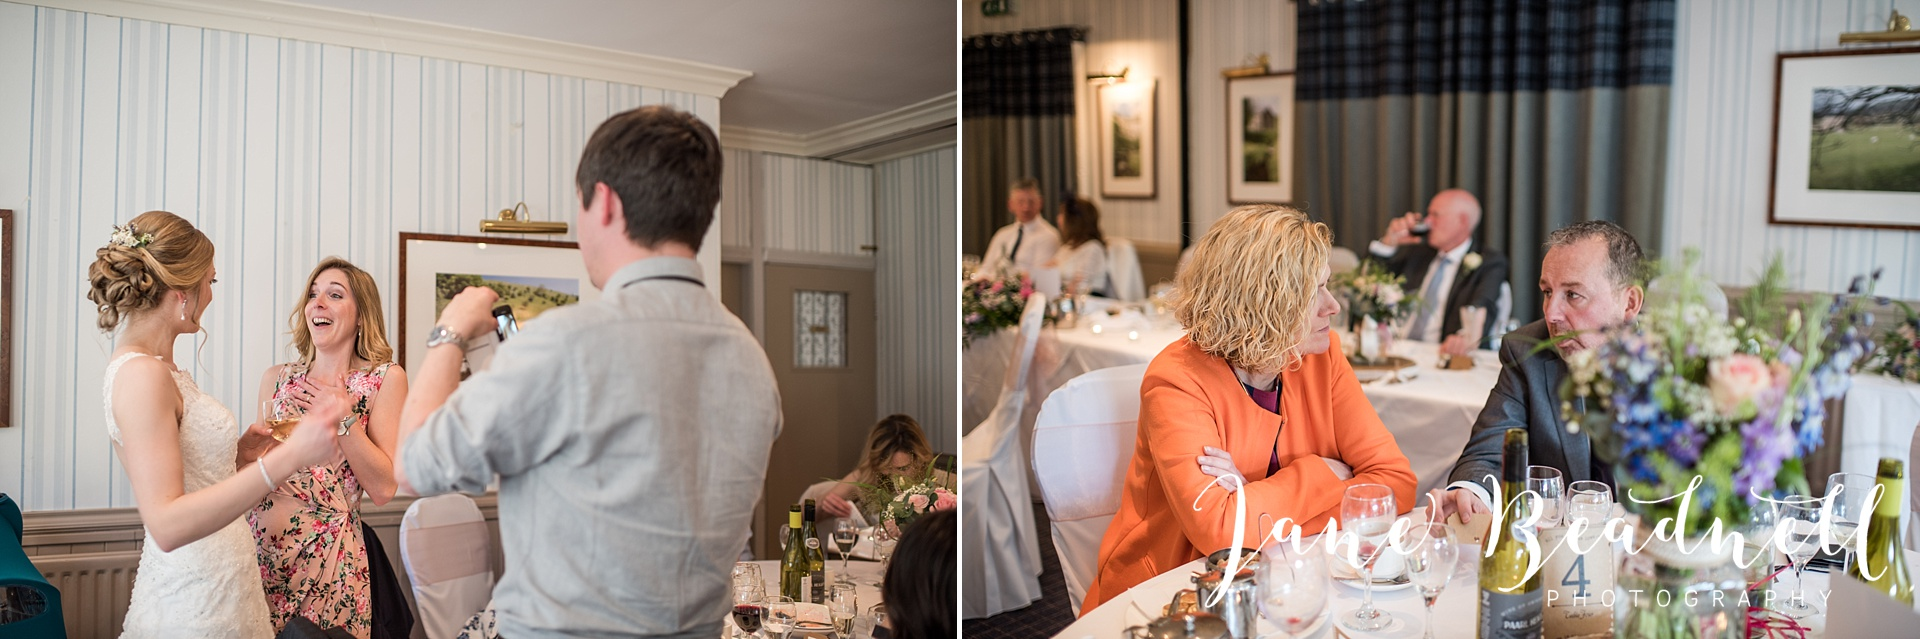 Otley Chevin Lodge wedding photography by Jane Beadnell Photography Leeds_0157